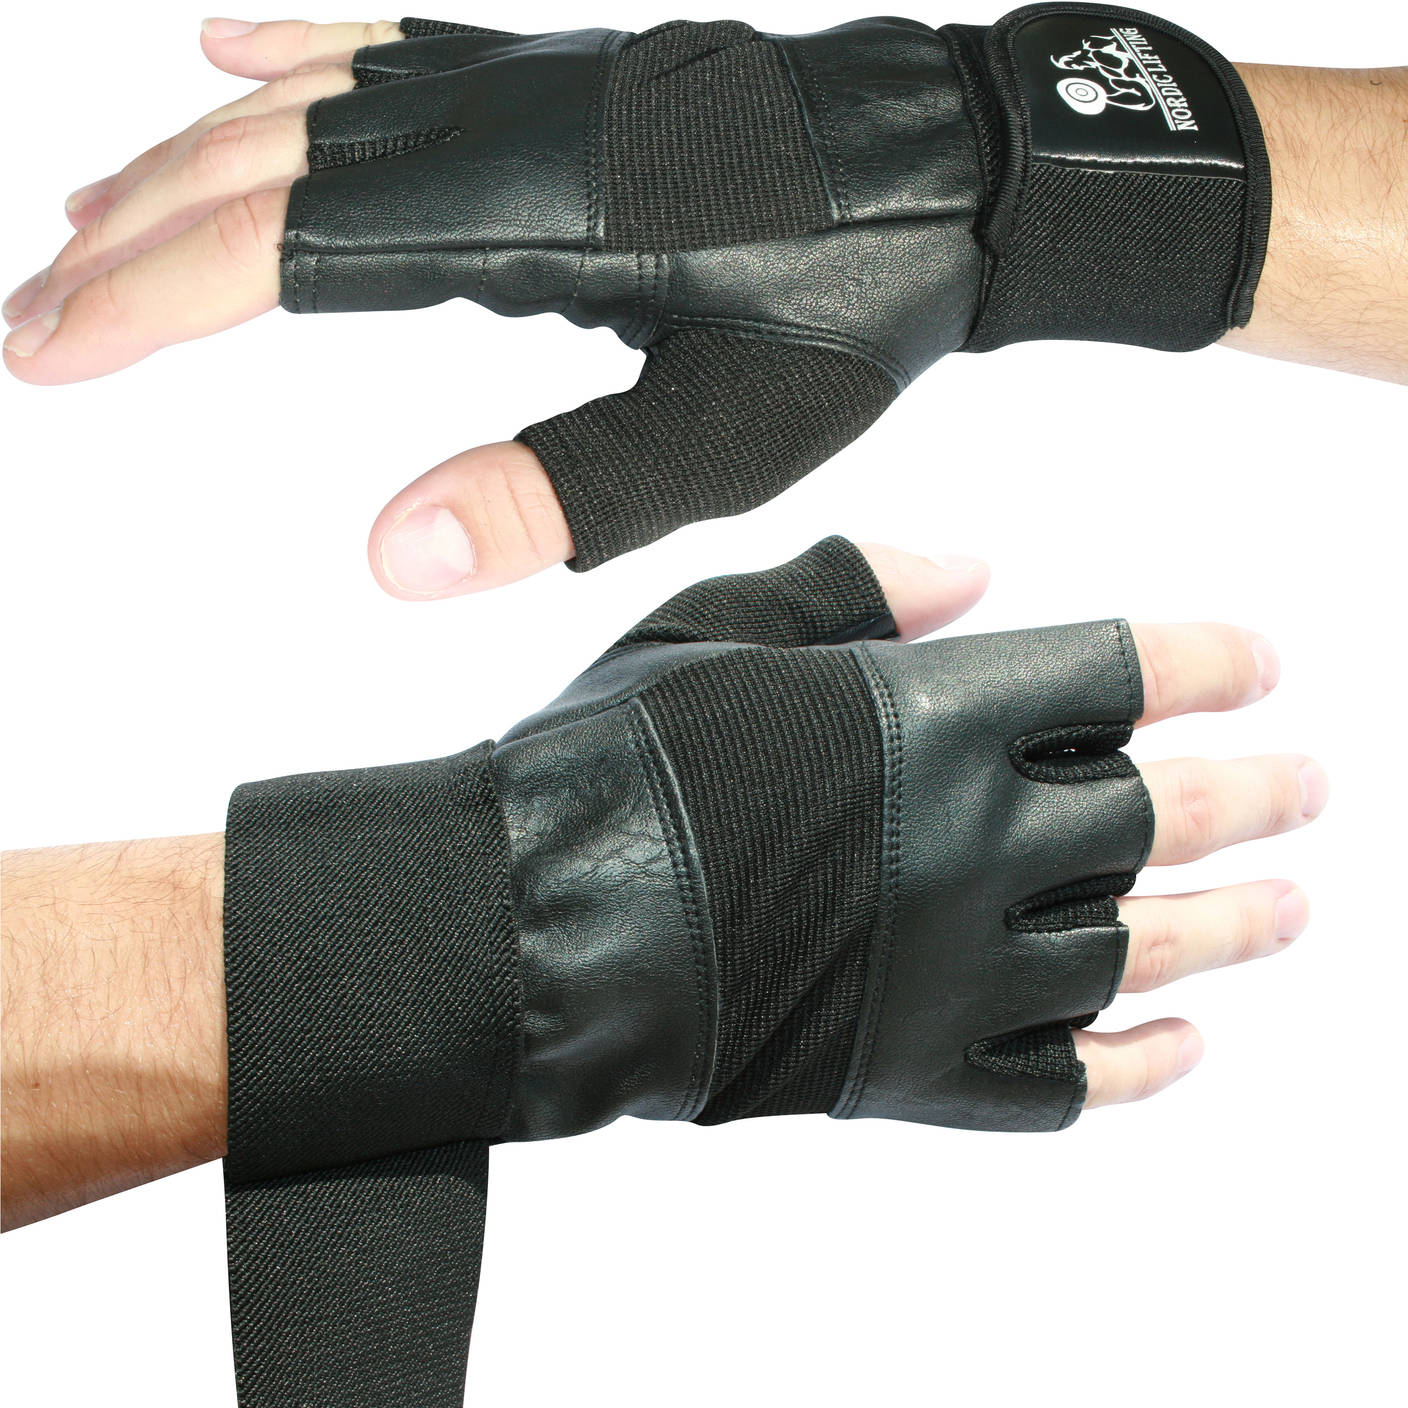 Black Weightlifting Gloves